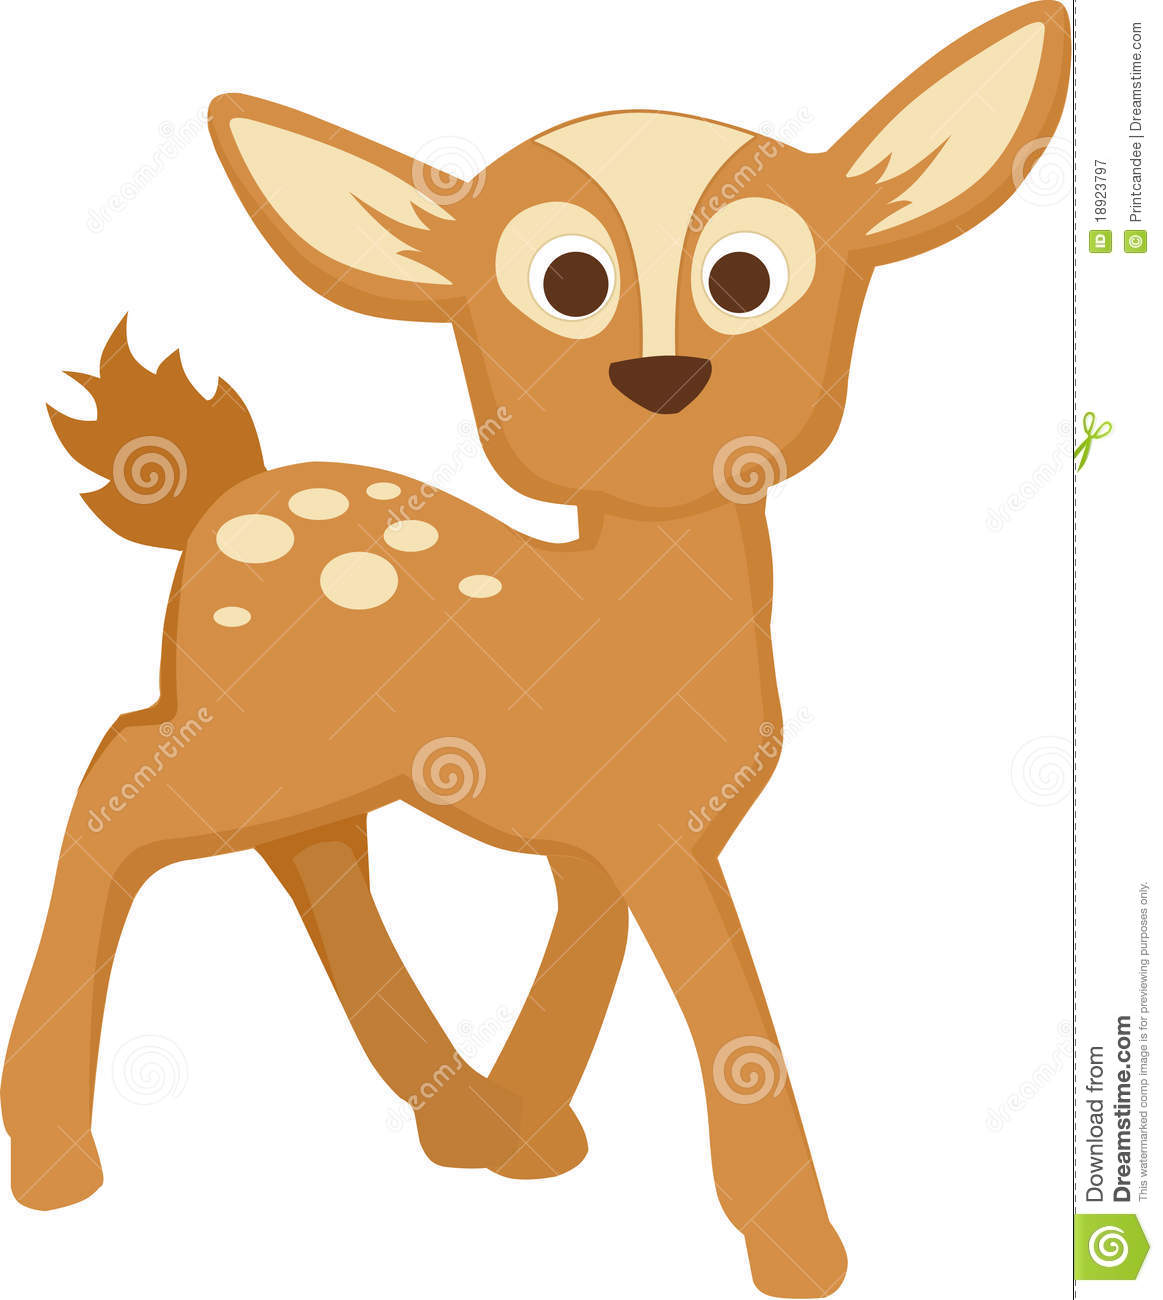 Baby Deer Royalty Free Stock Photography - Image: 18923797